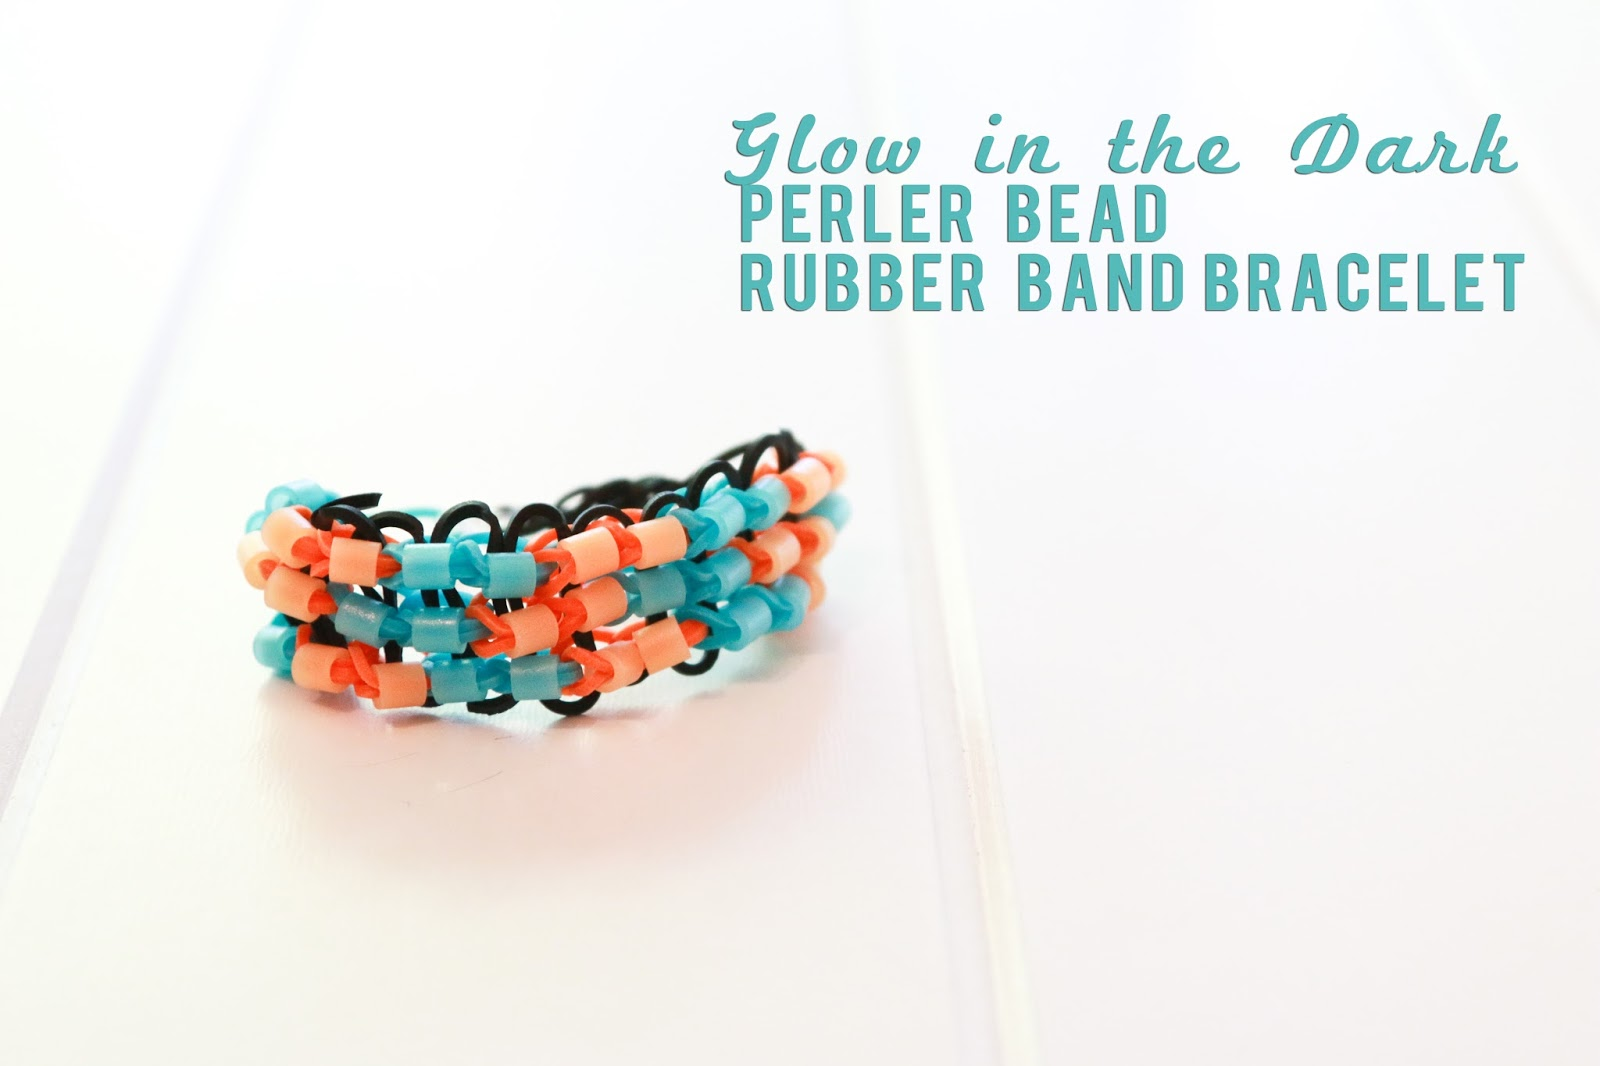 Glow in the Dark Perler Bead Rubber Band Bracelet @createoften @craftsavvy #craftwarehouse #loombands #rubberbandbracelets #perler